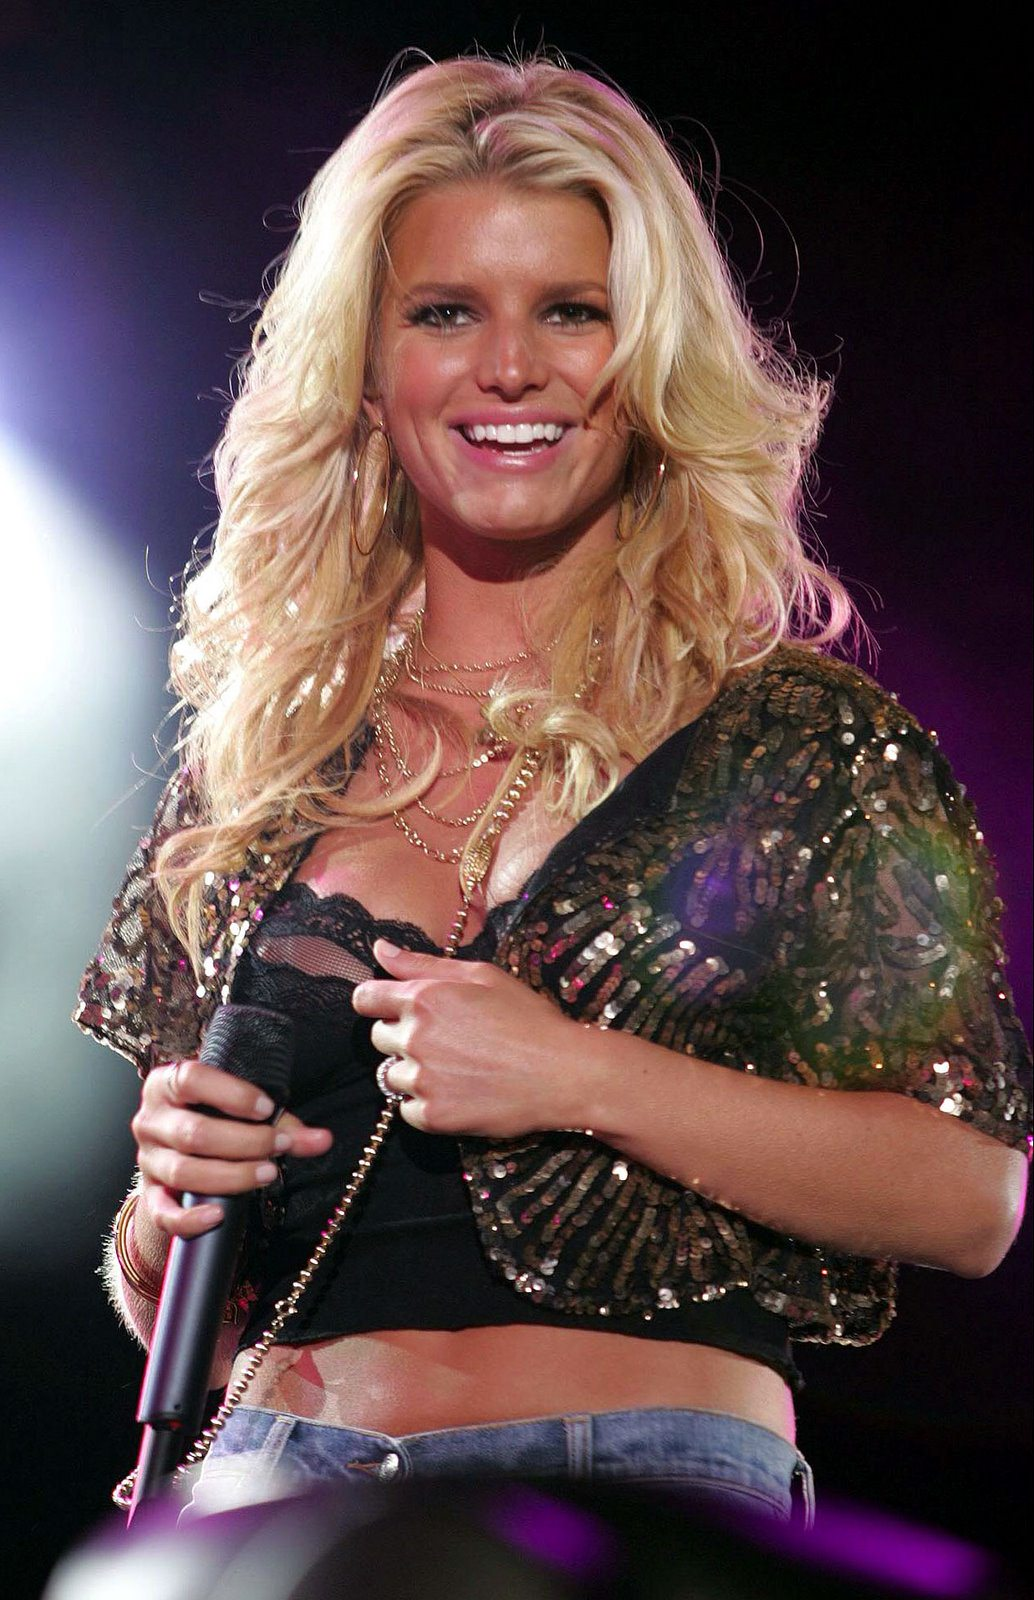 Jessica simpson nipple slips